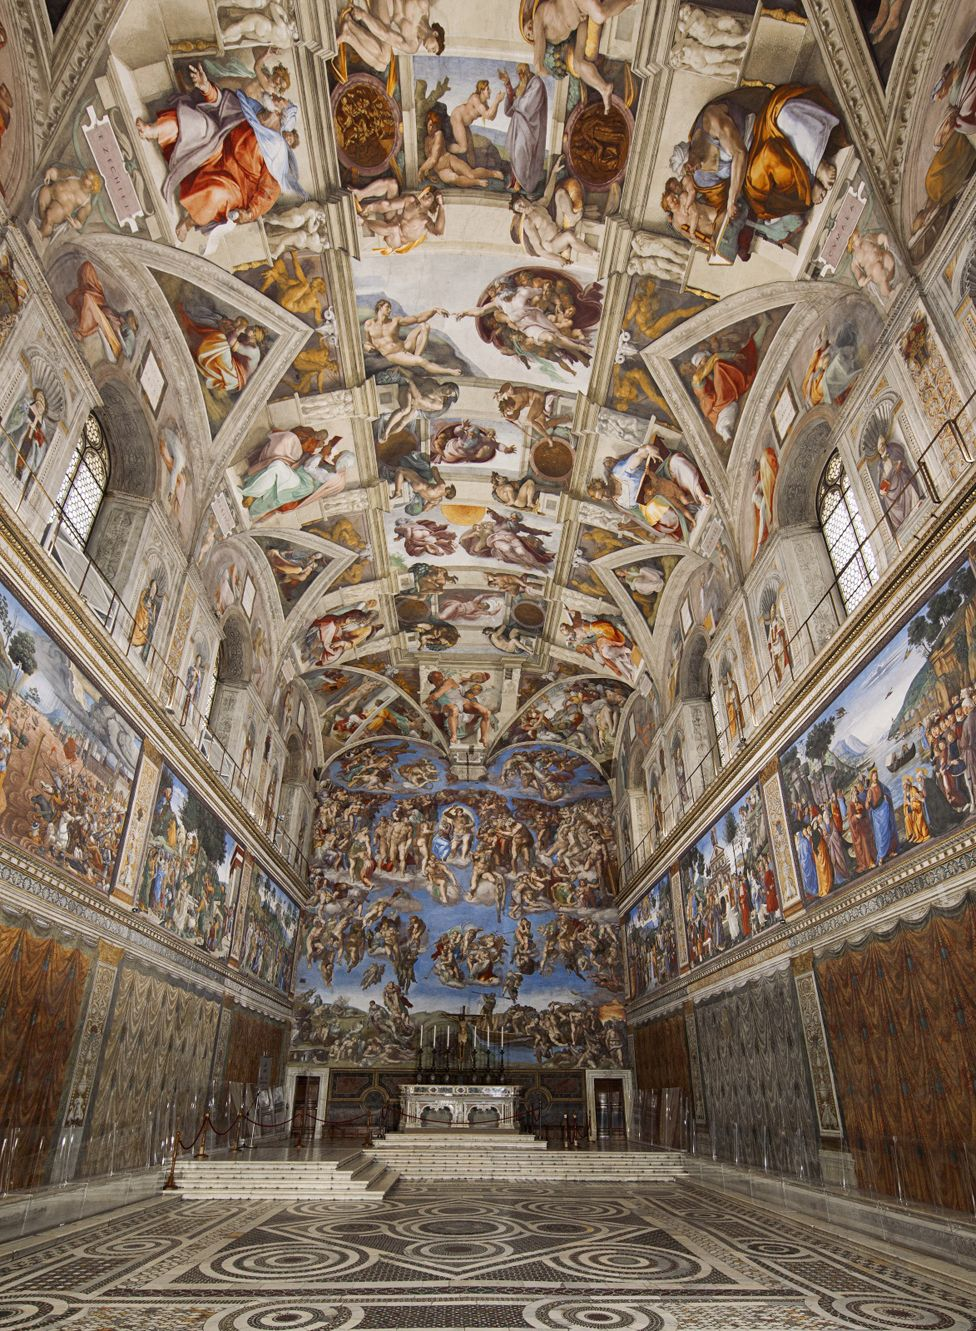 The virtual tour gives you the chance to marvel at the magnificent Sistine Chapel in Vatican City, including Michelangelo's breathtakingly beautiful ceiling